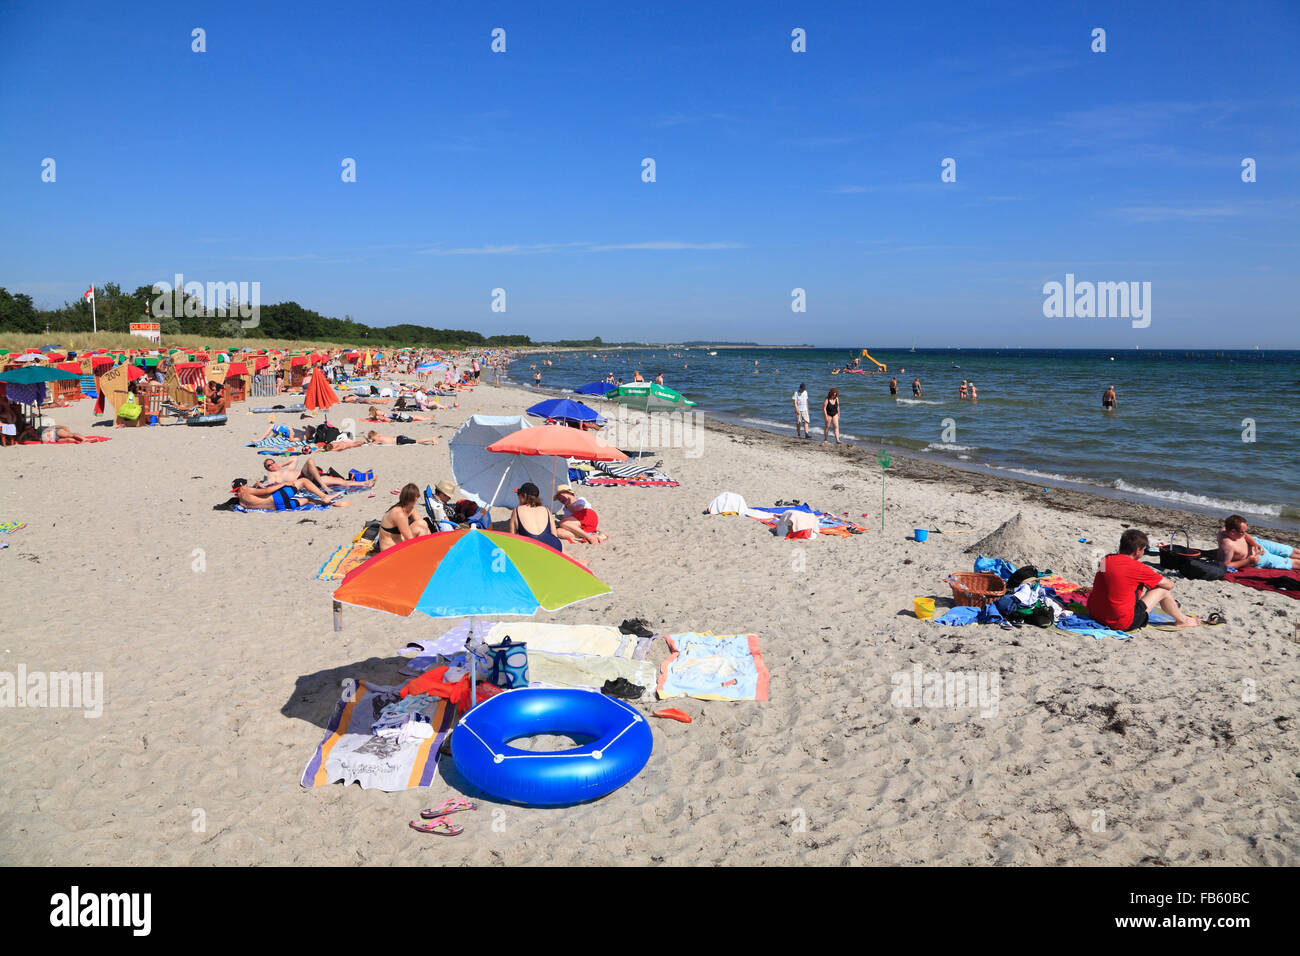 Suedstrand (south beach) at Burgtiefe, Fehmarn island, Baltic sea coast, Schleswig-Holstein, Germany - Stock Image